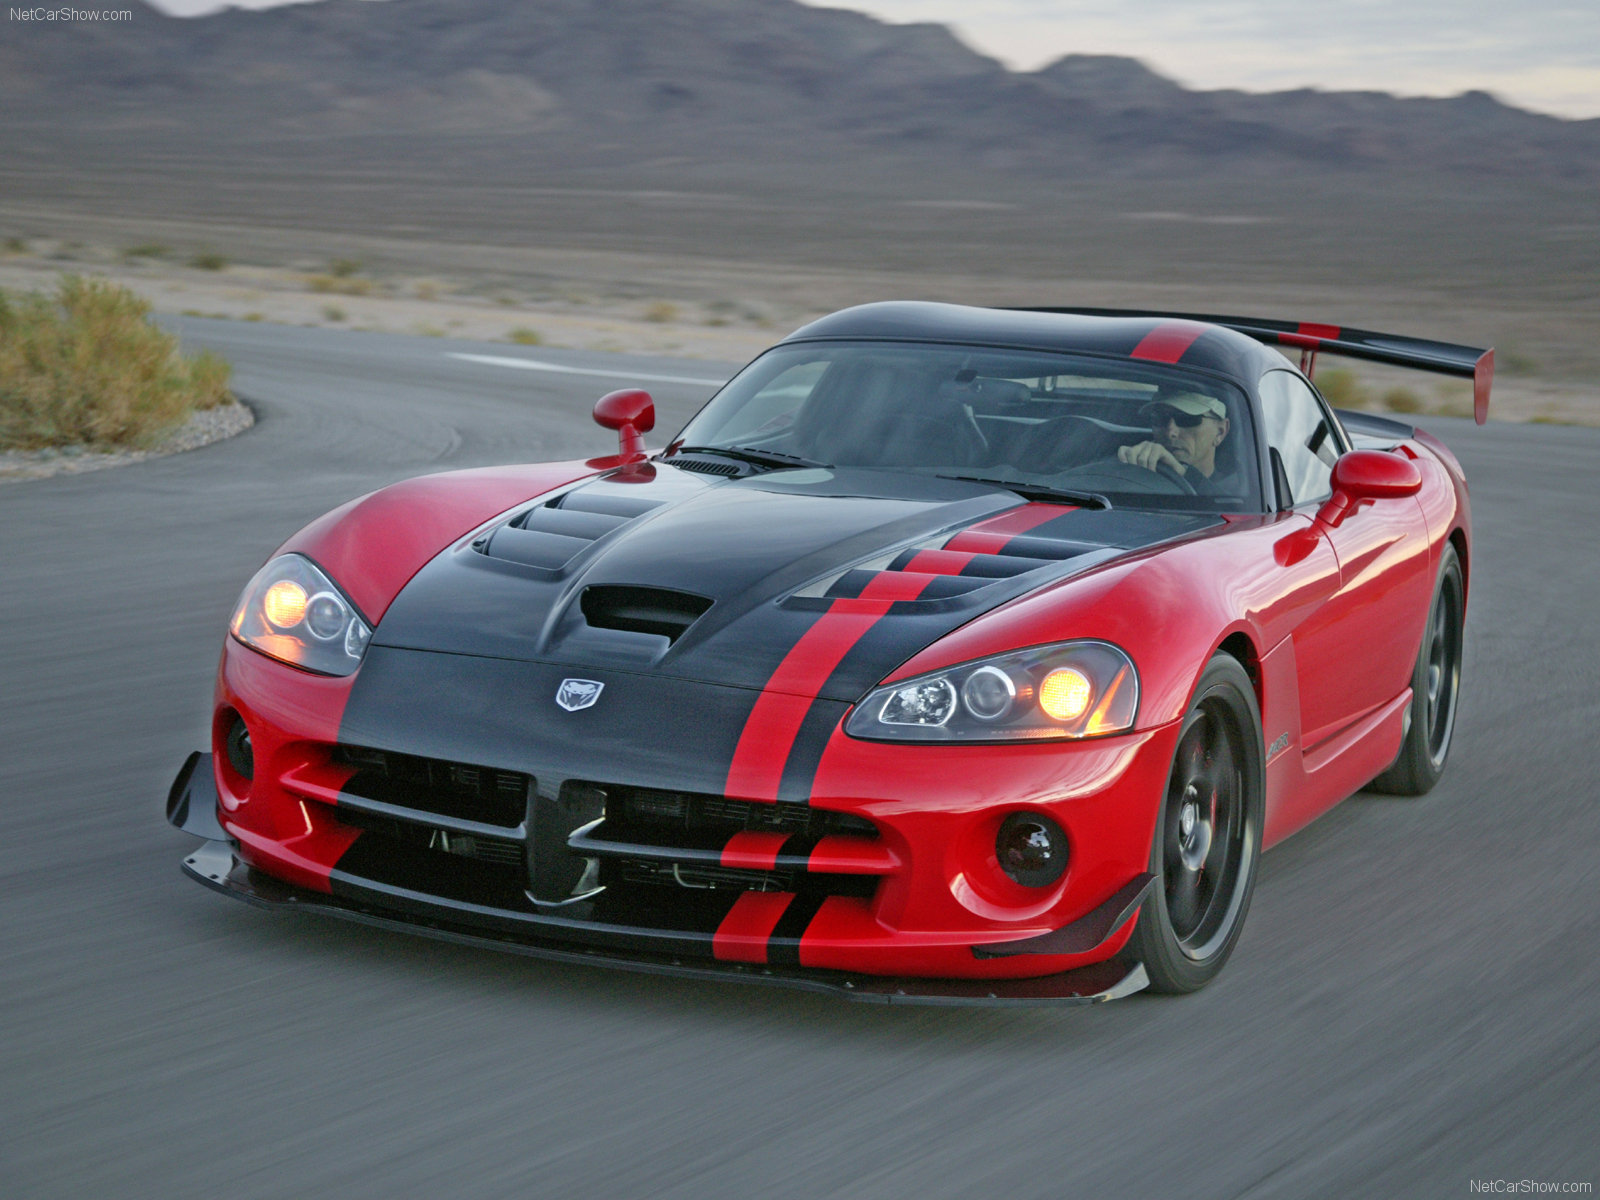 Dodge Viper SRT-10 ACR photos - PhotoGallery with 11 pics ...